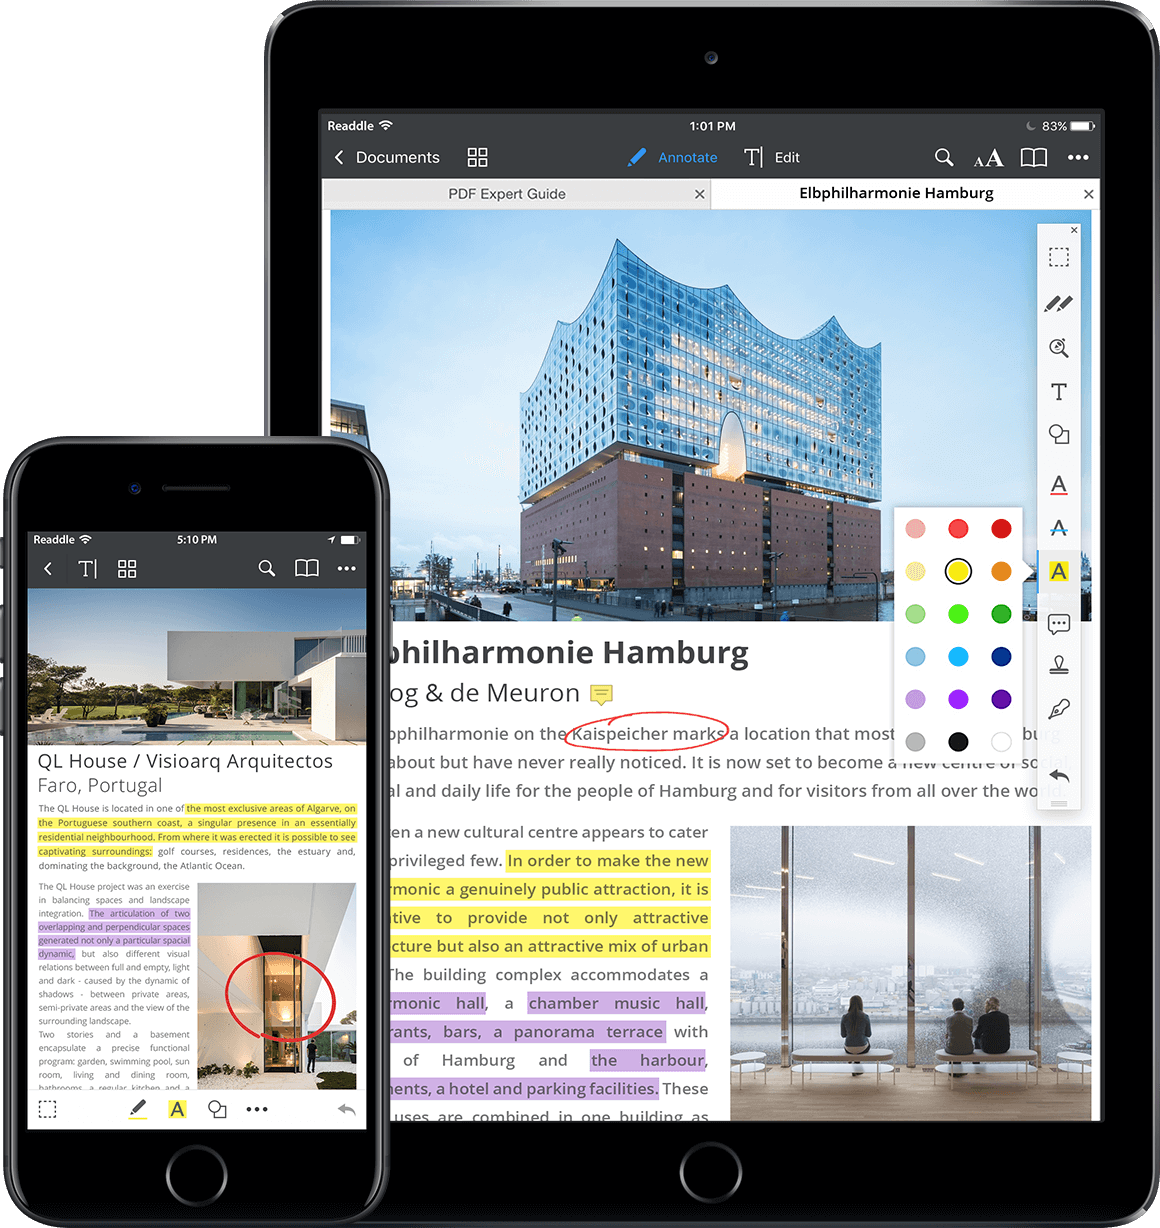 Image result for 8 Best PDF Reader Apps For iPhone To View And Edit PDFs | 2018 Edition